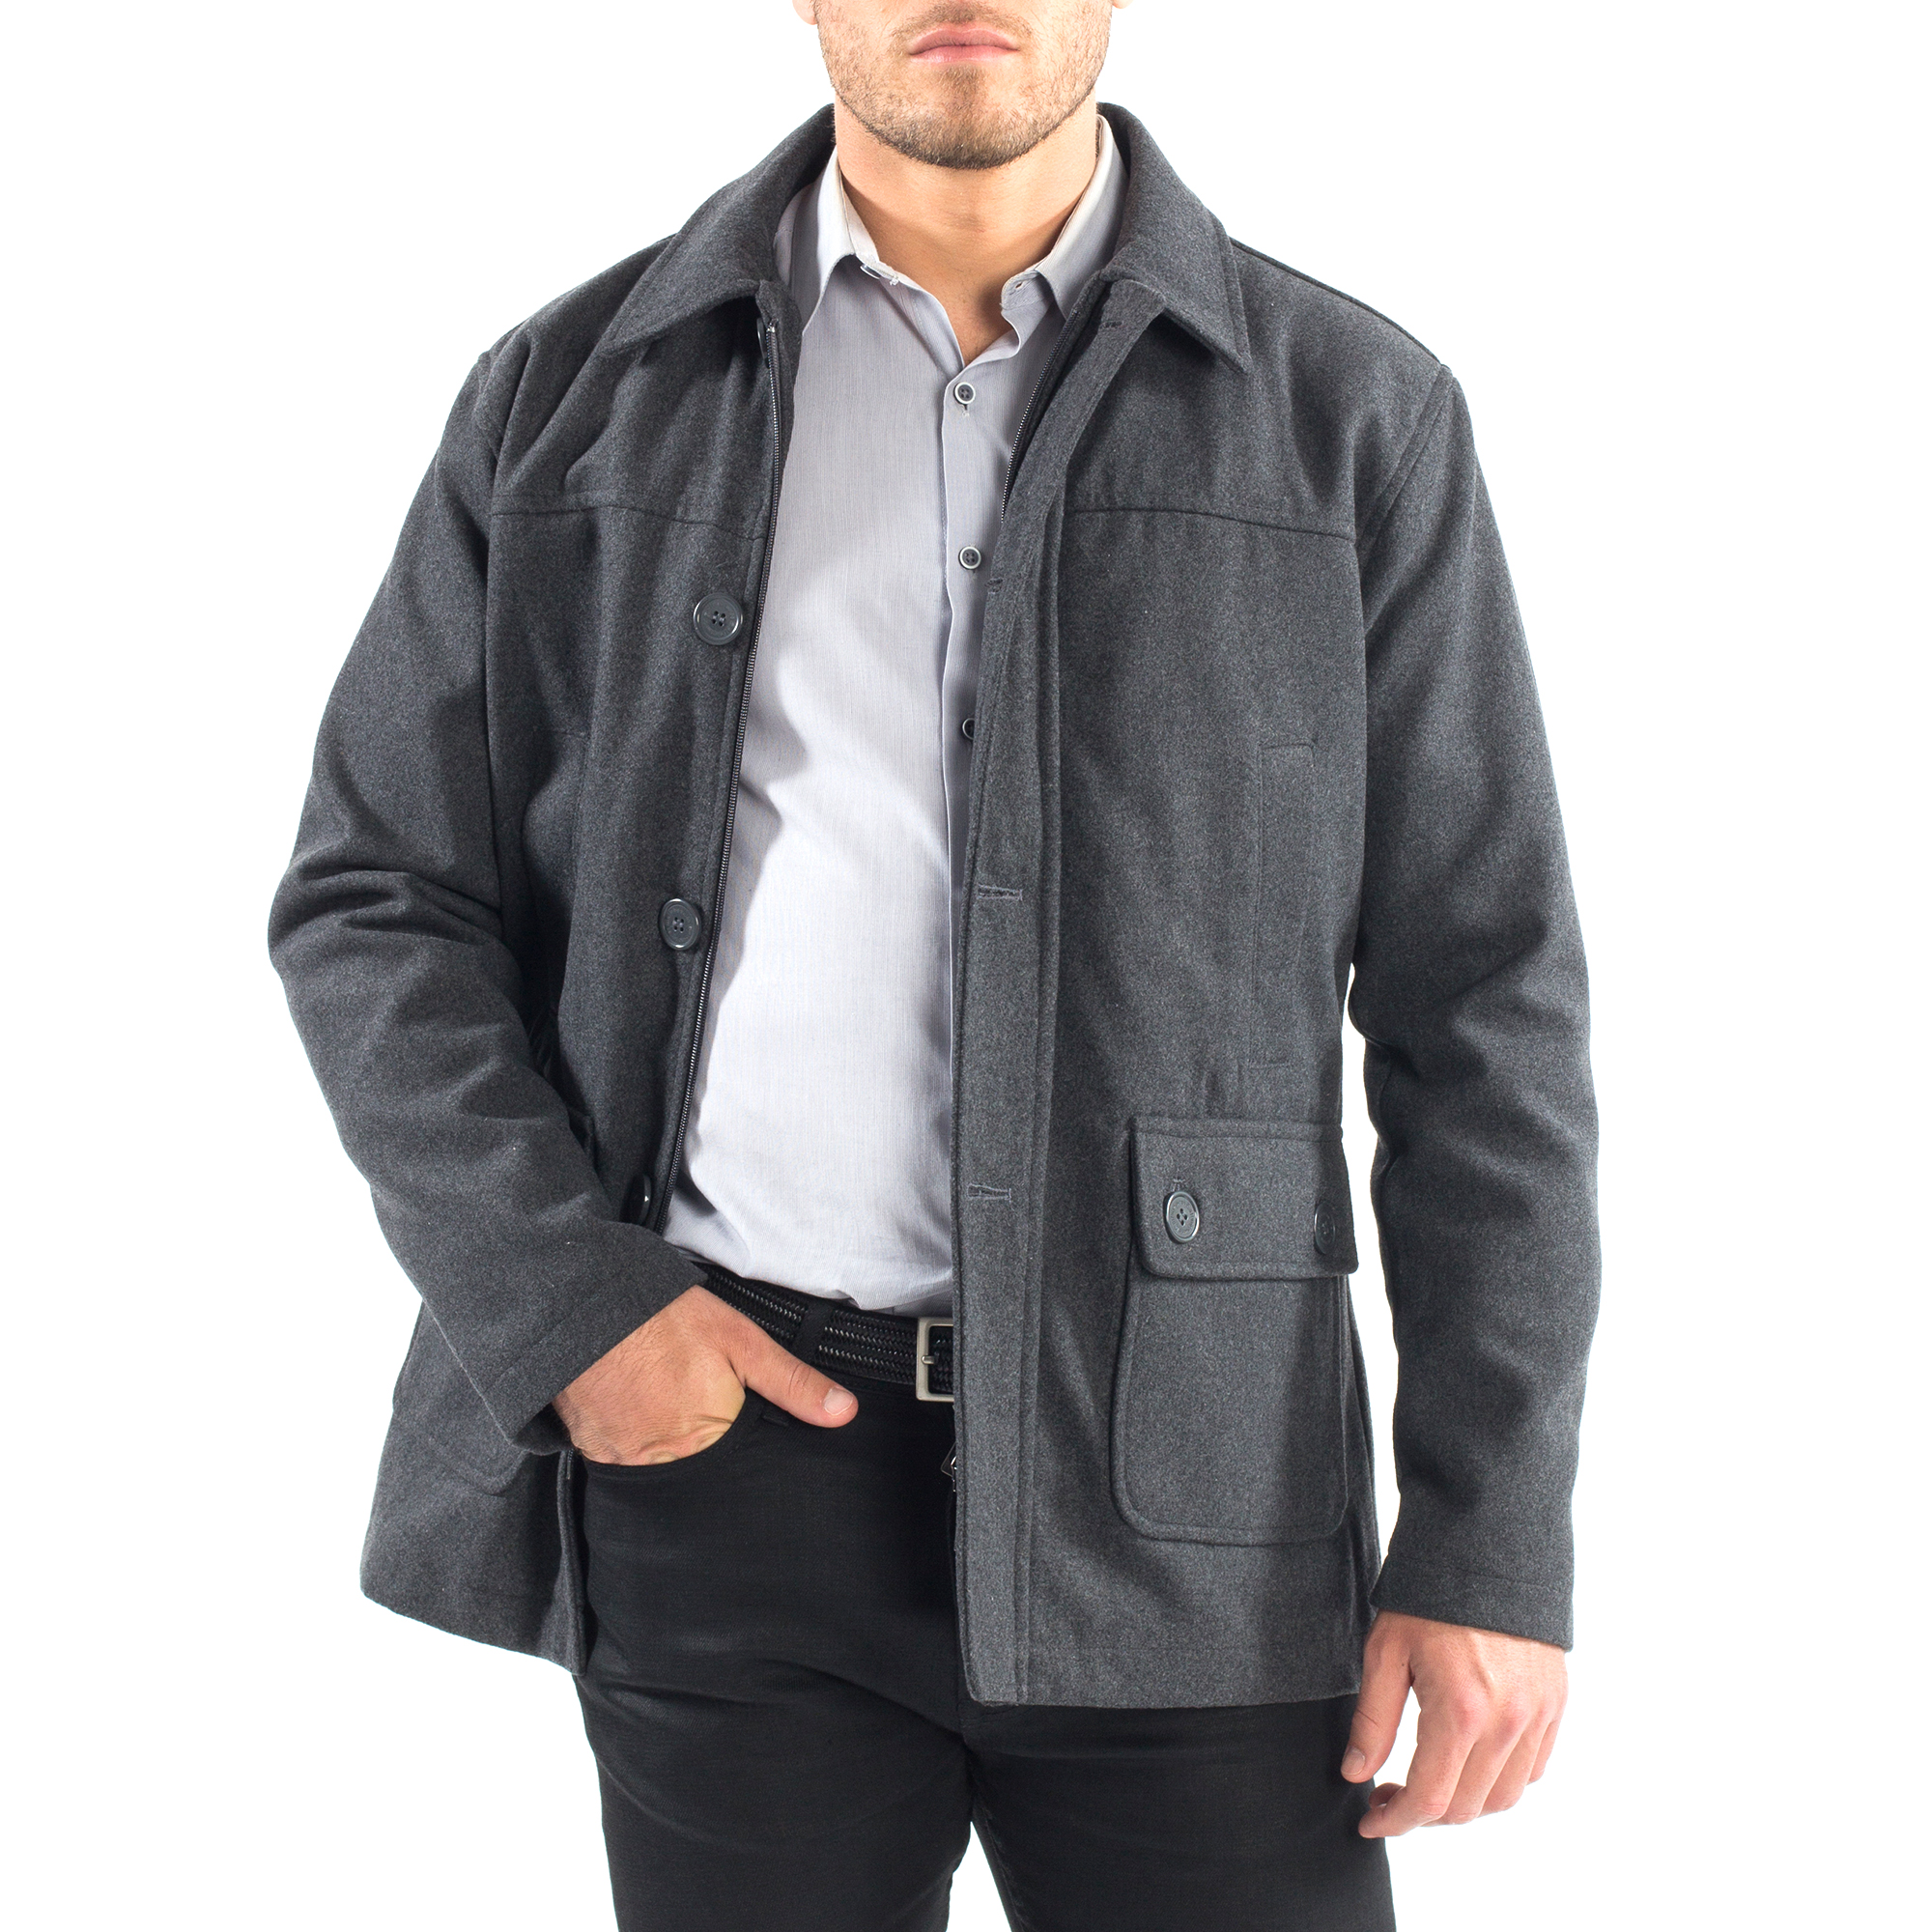 Alpine-Swiss-Wyat-Mens-Wool-Blend-Classic-Barn-Coat-Cargo-Pocket-Military-Jacket